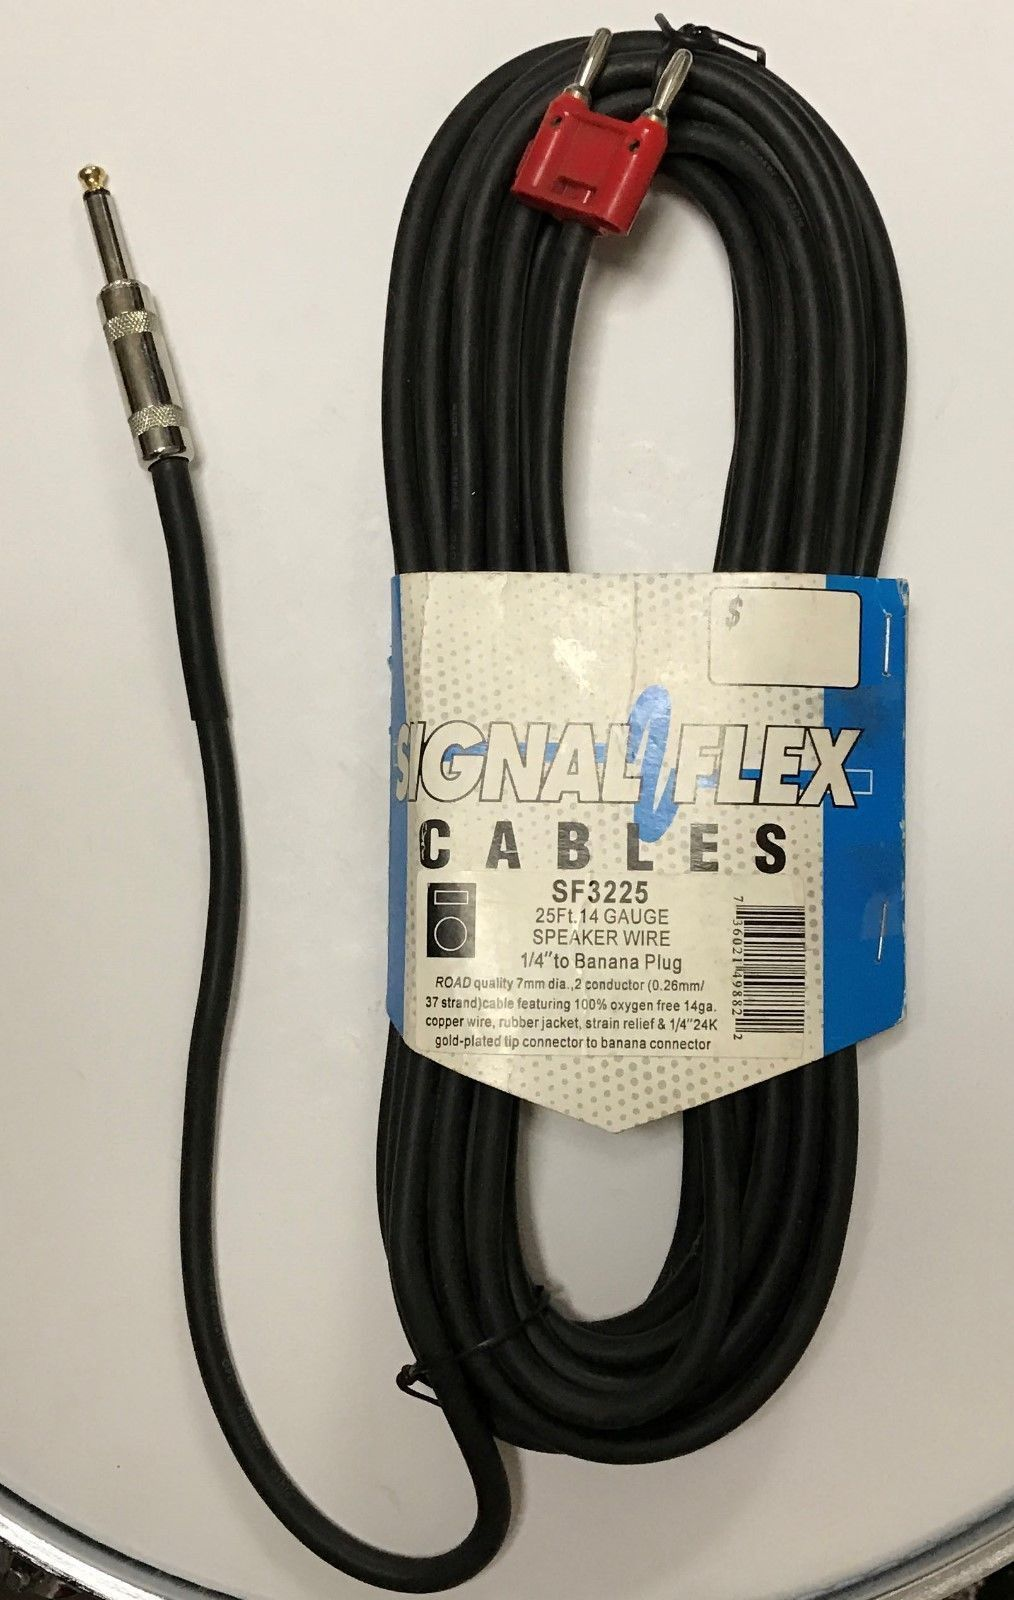 New Signal Flex 25 Foot 1 4 To Dual Banana Plugs 14 Gauge Speaker Cable Cord